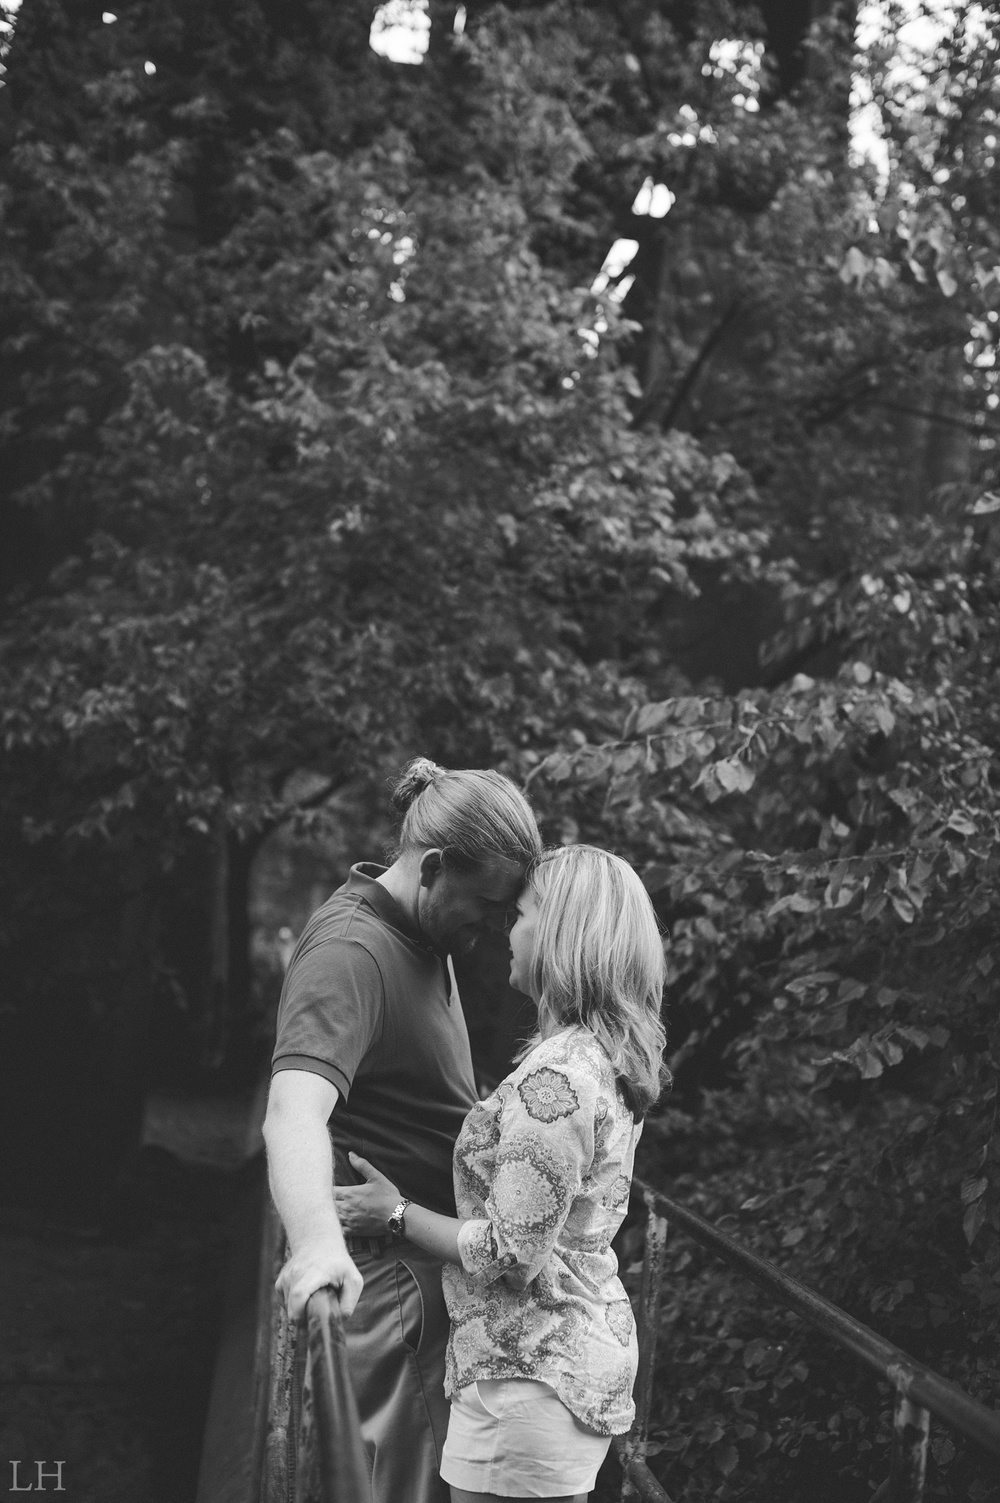 DowntownRichmondWaterwayEngagementSession113.jpg